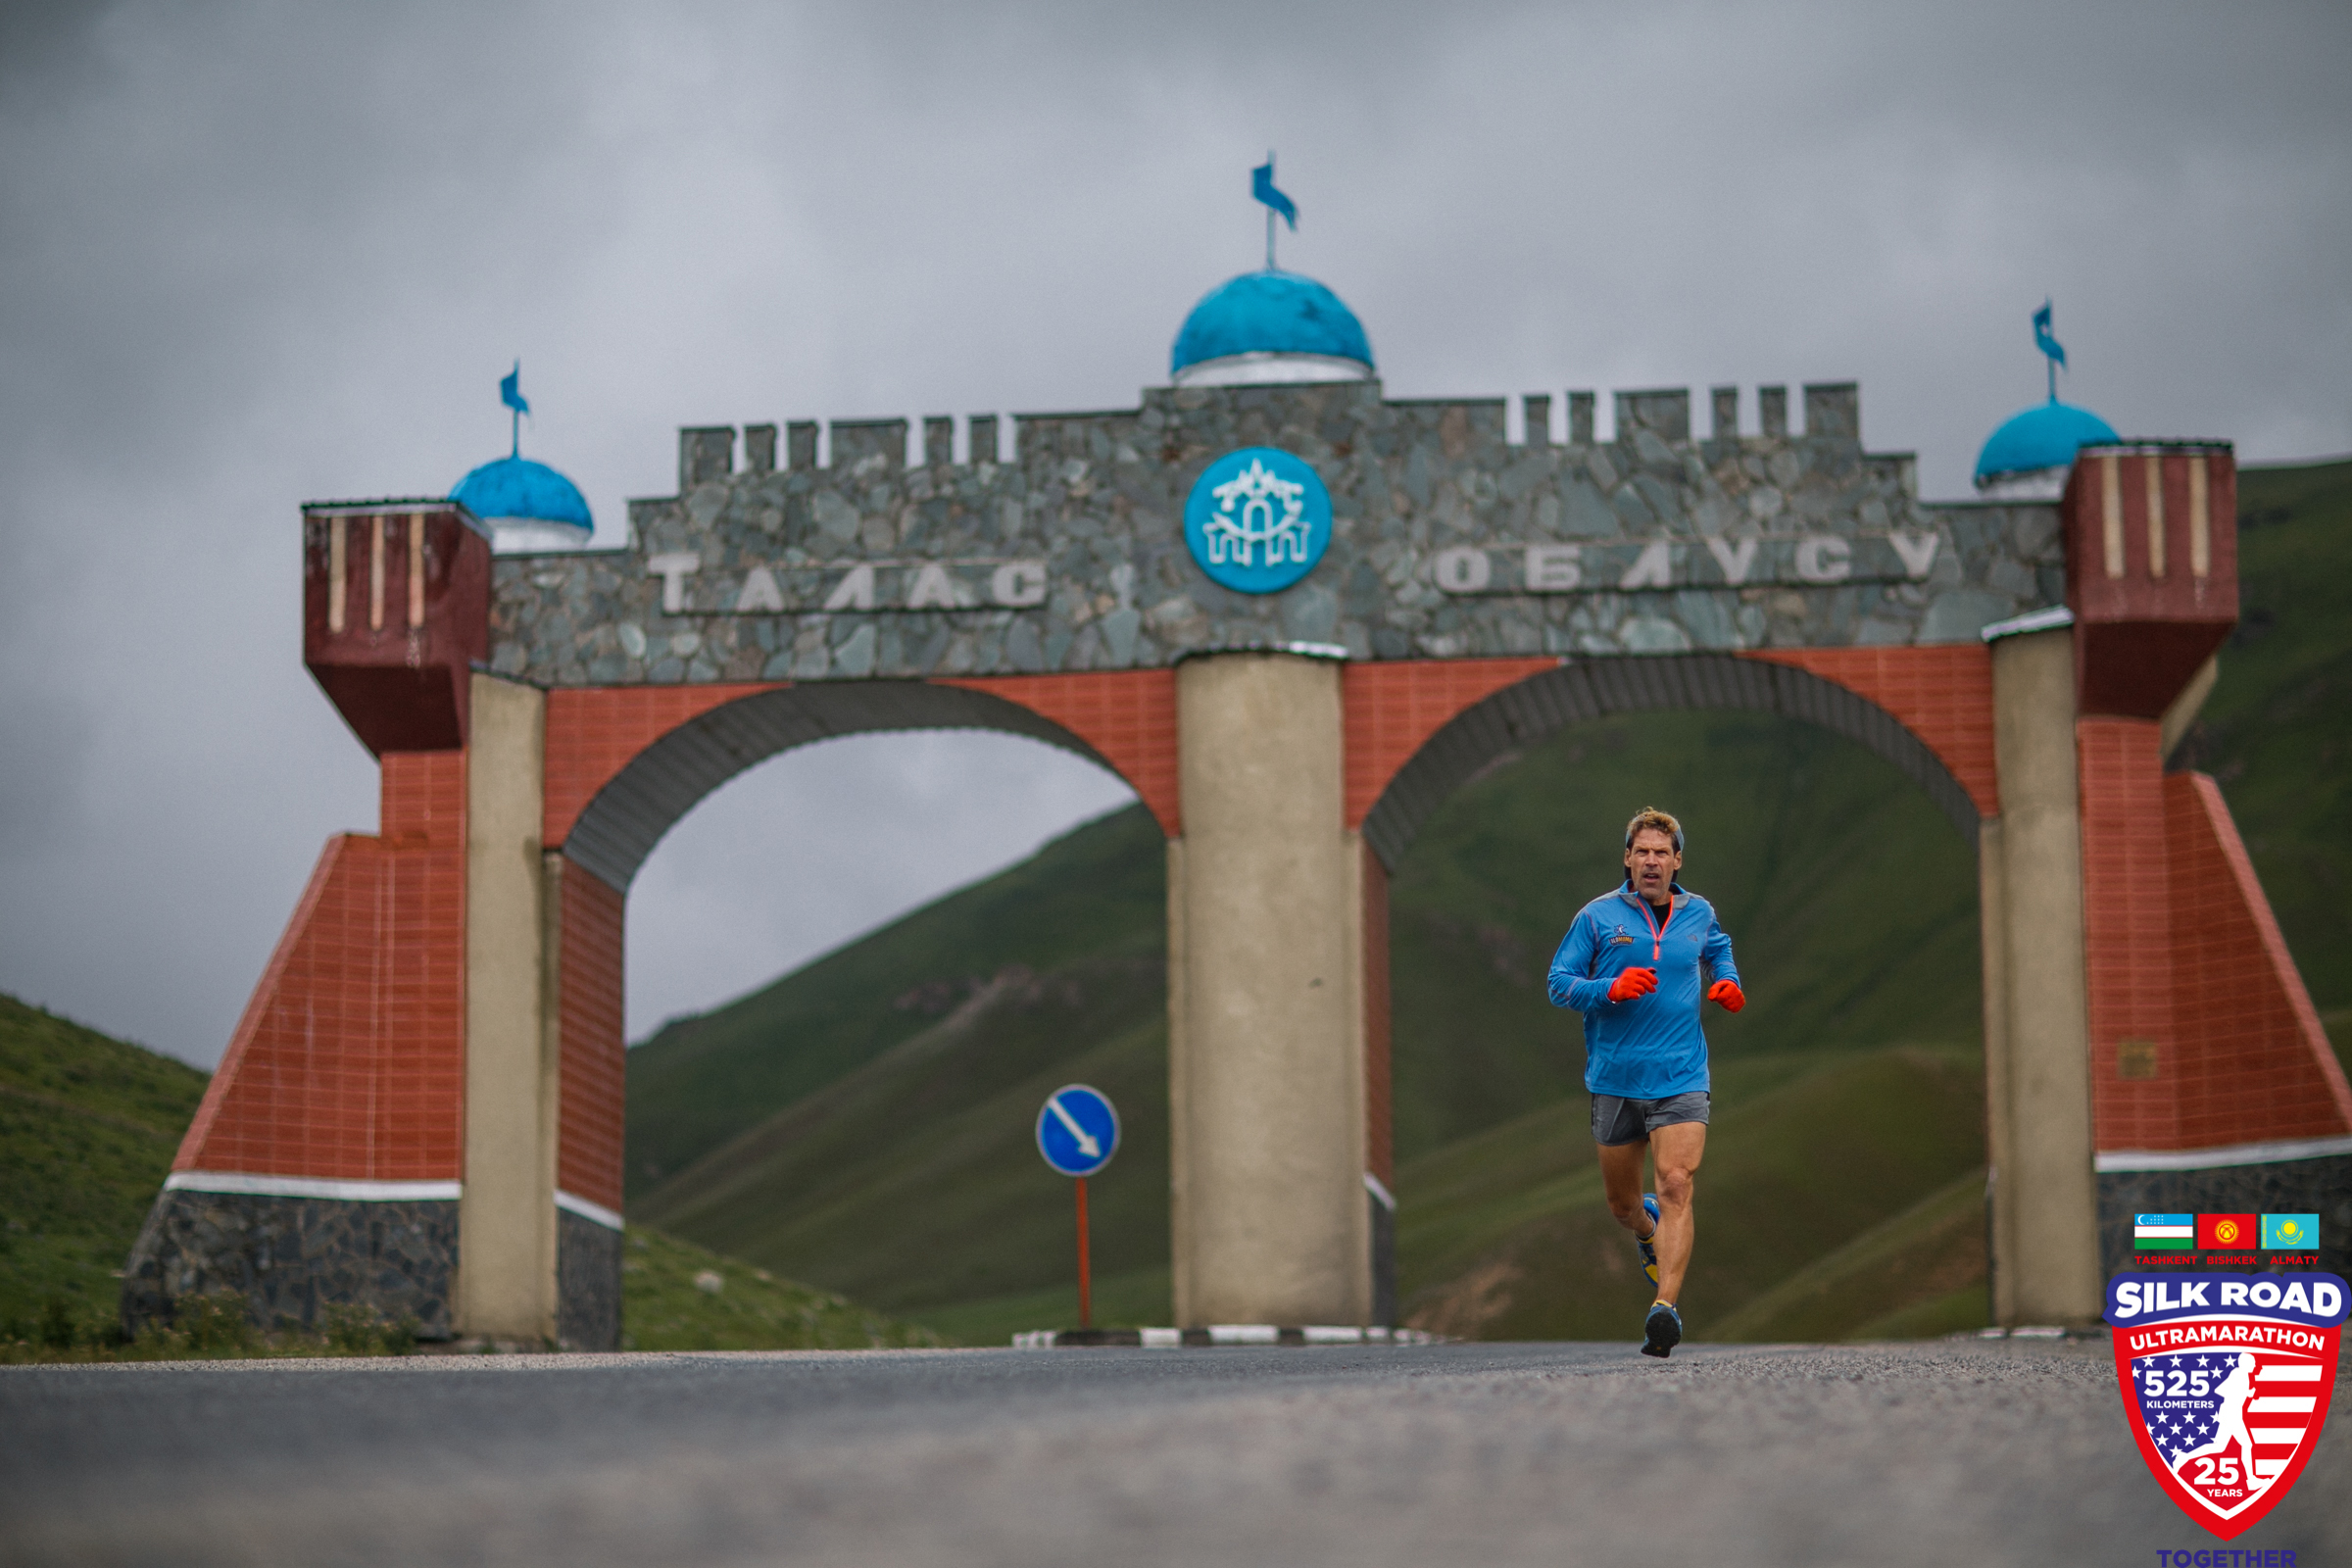 Dean running through a large archway in the Kyrgyz Republic